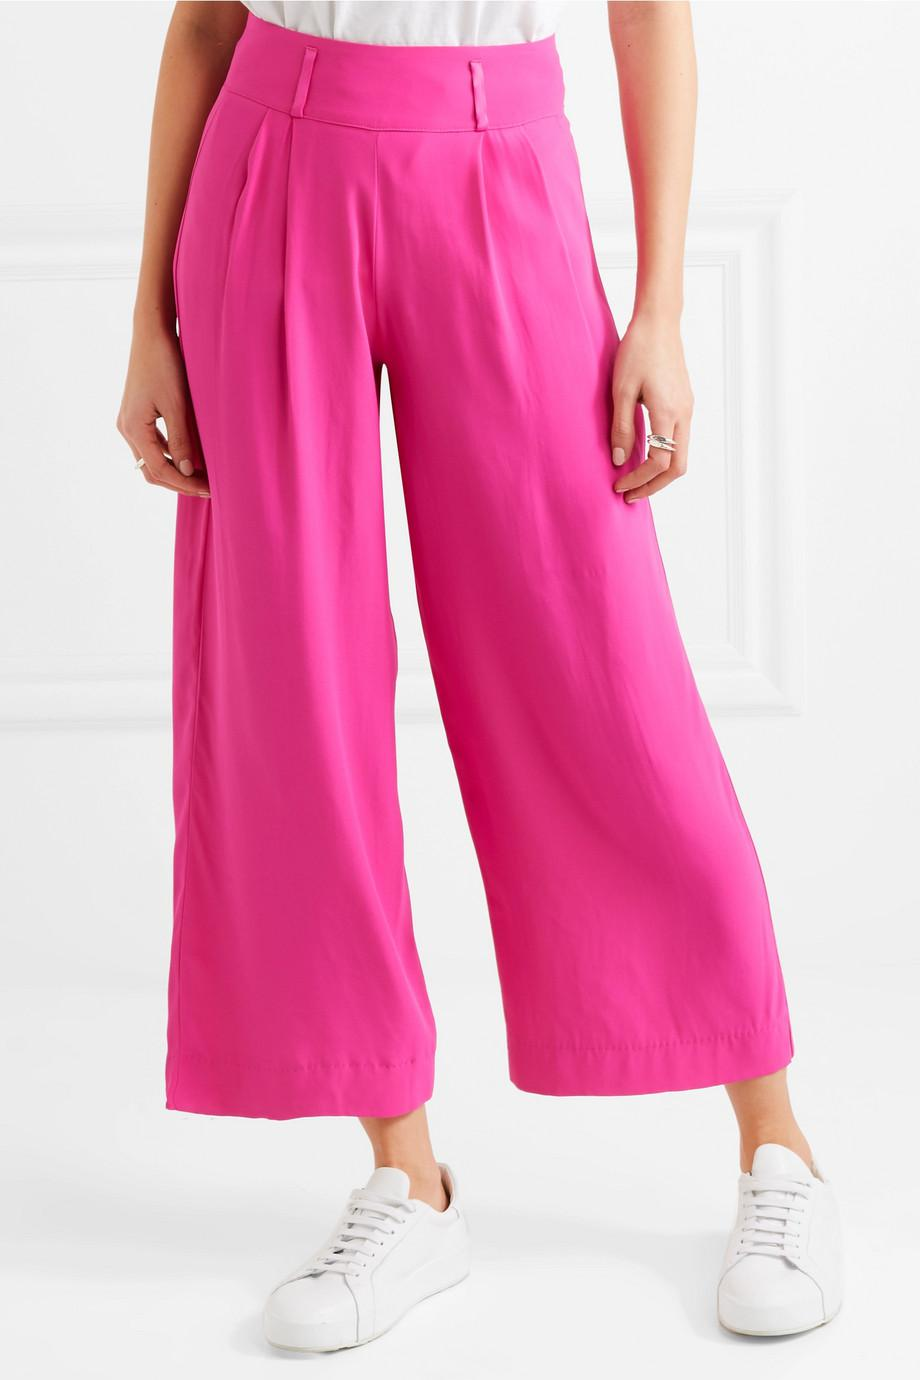 Elodie Cropped Crepe Wide-leg Pants - Fuchsia Staud